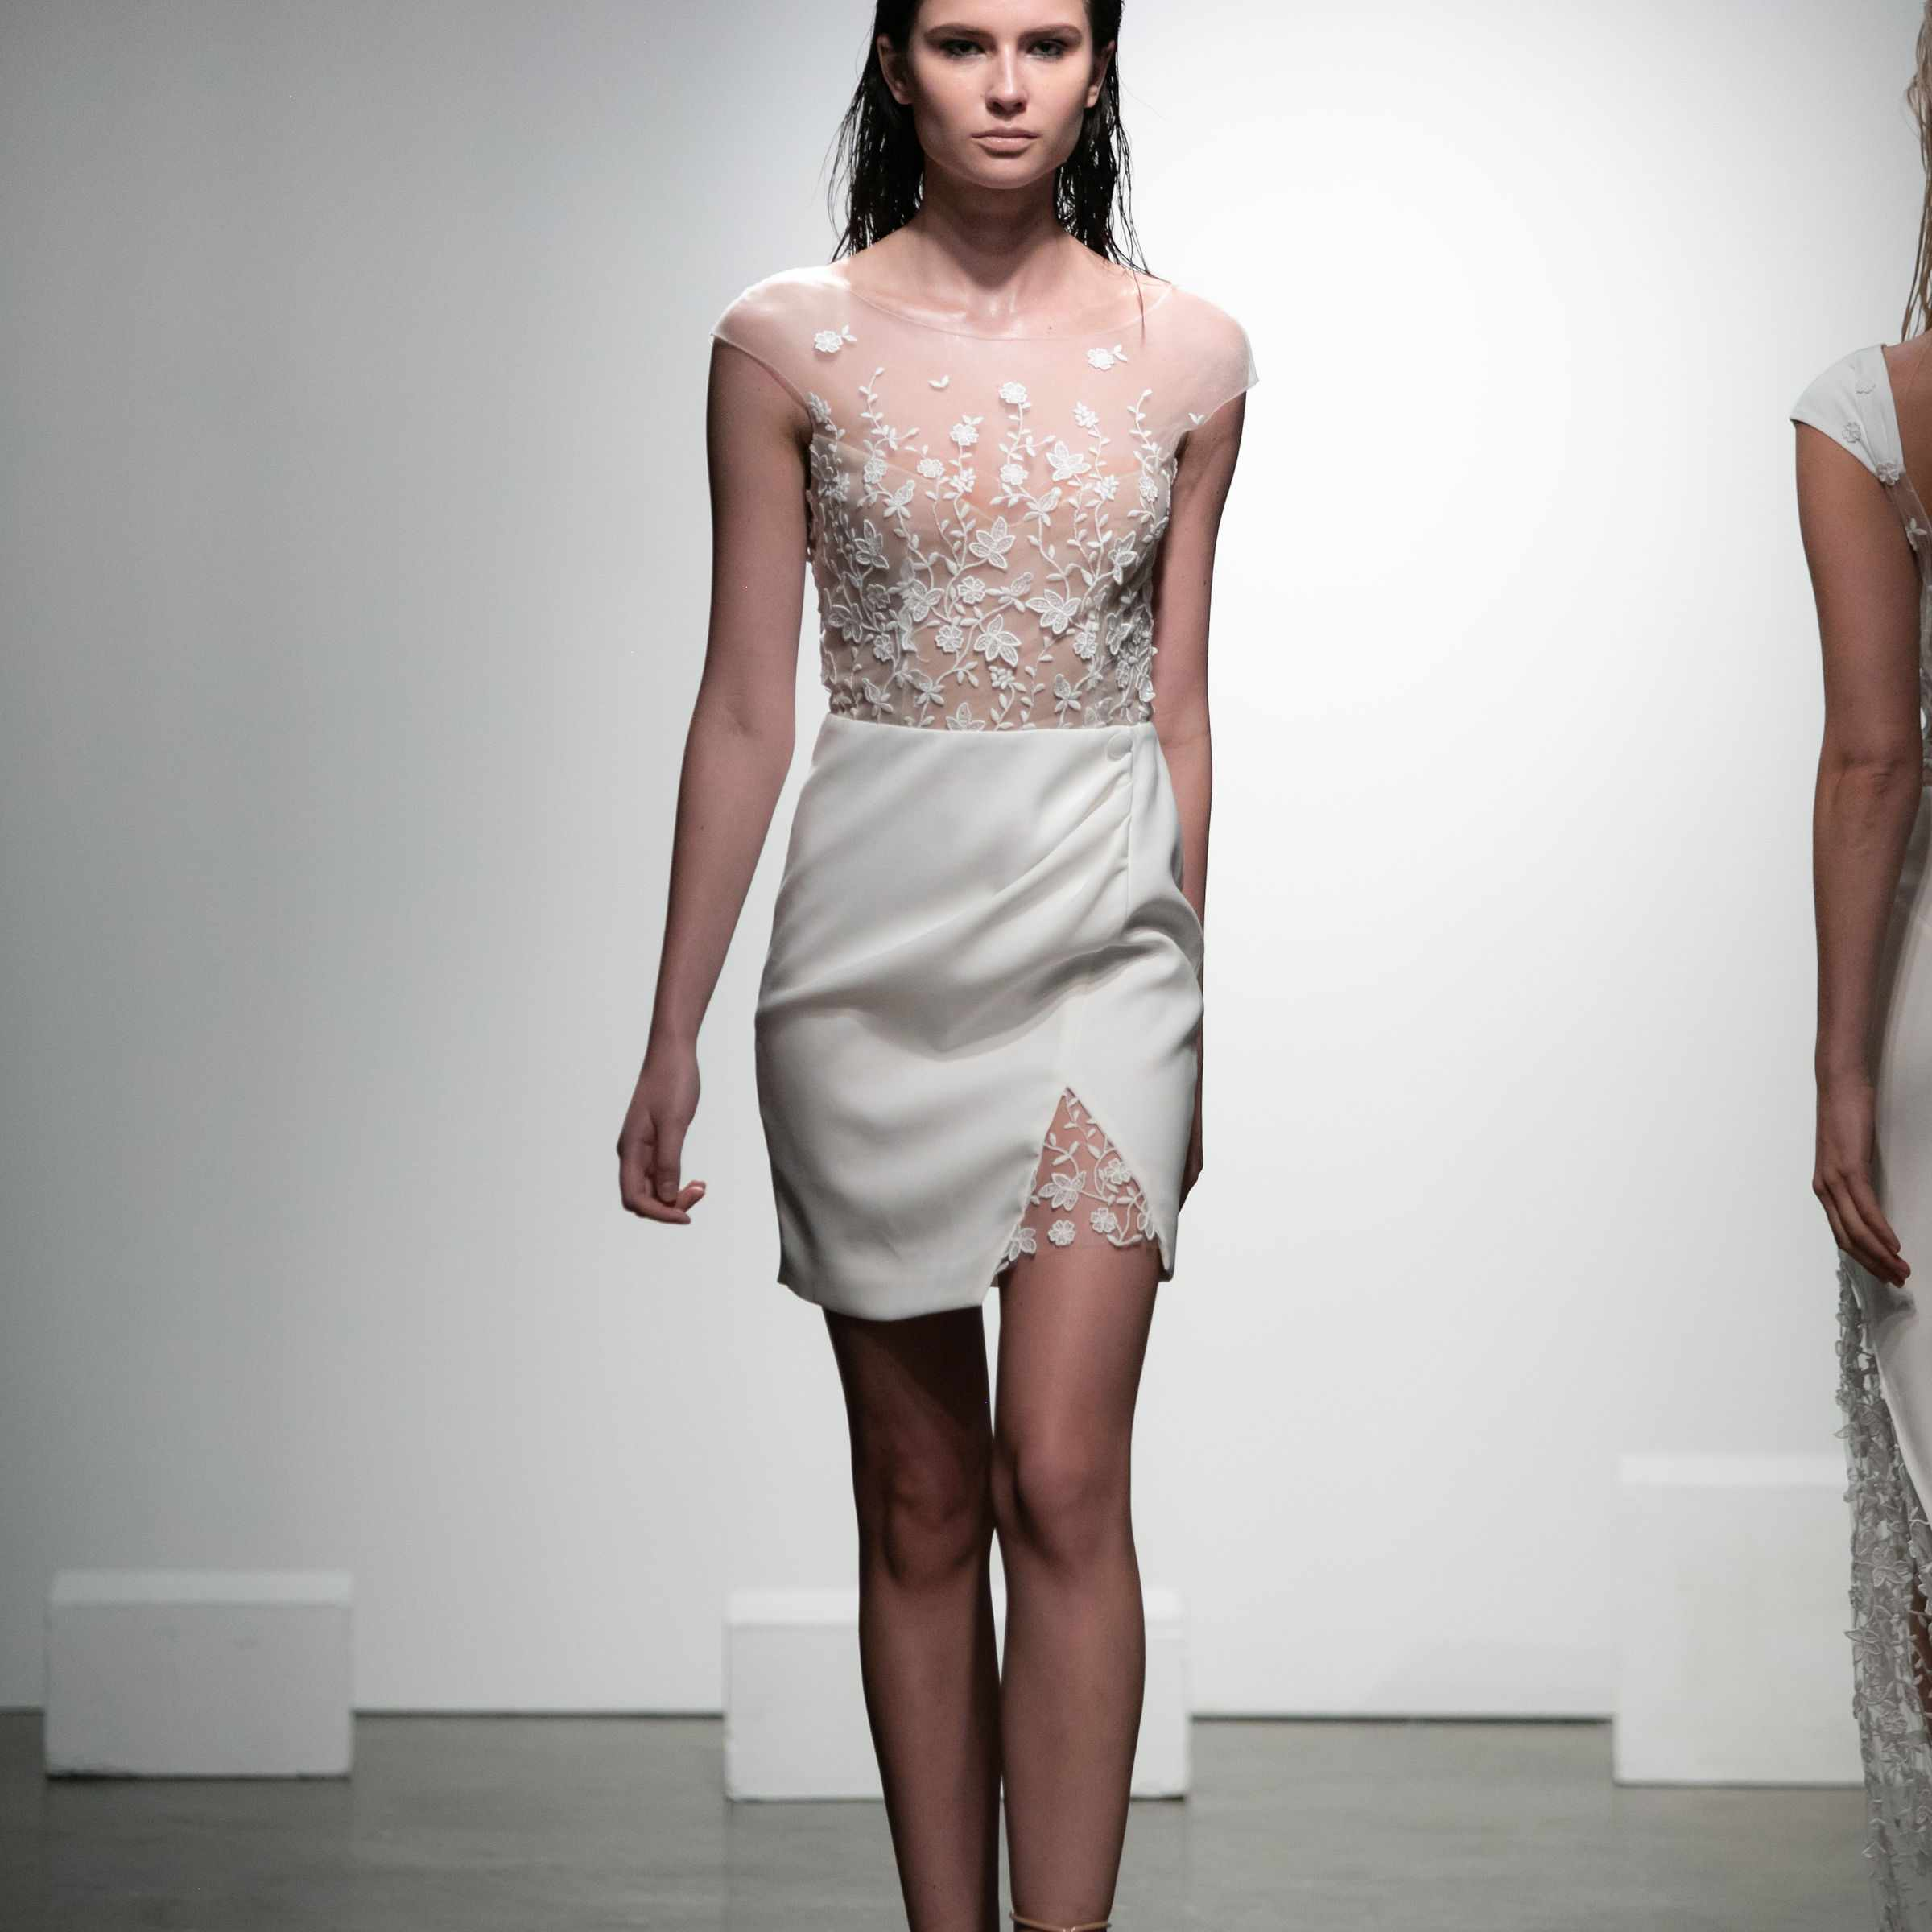 Model in mini crepe dress with wrap effect see-though top in 3D embroidered tulle